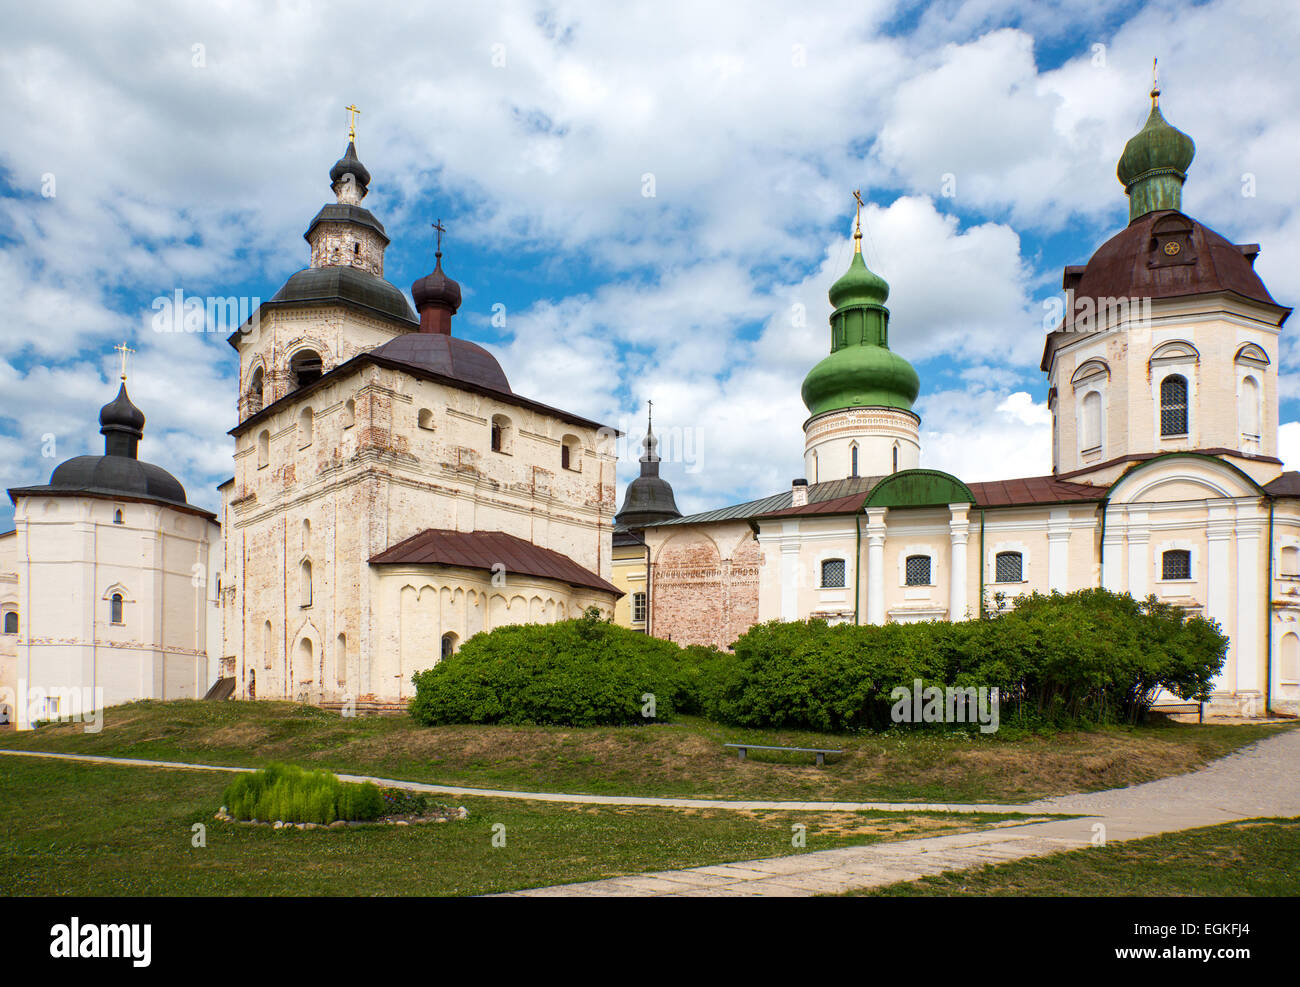 Russia, Goritsy, the Kirillo Belozersky Monastry - Stock Image